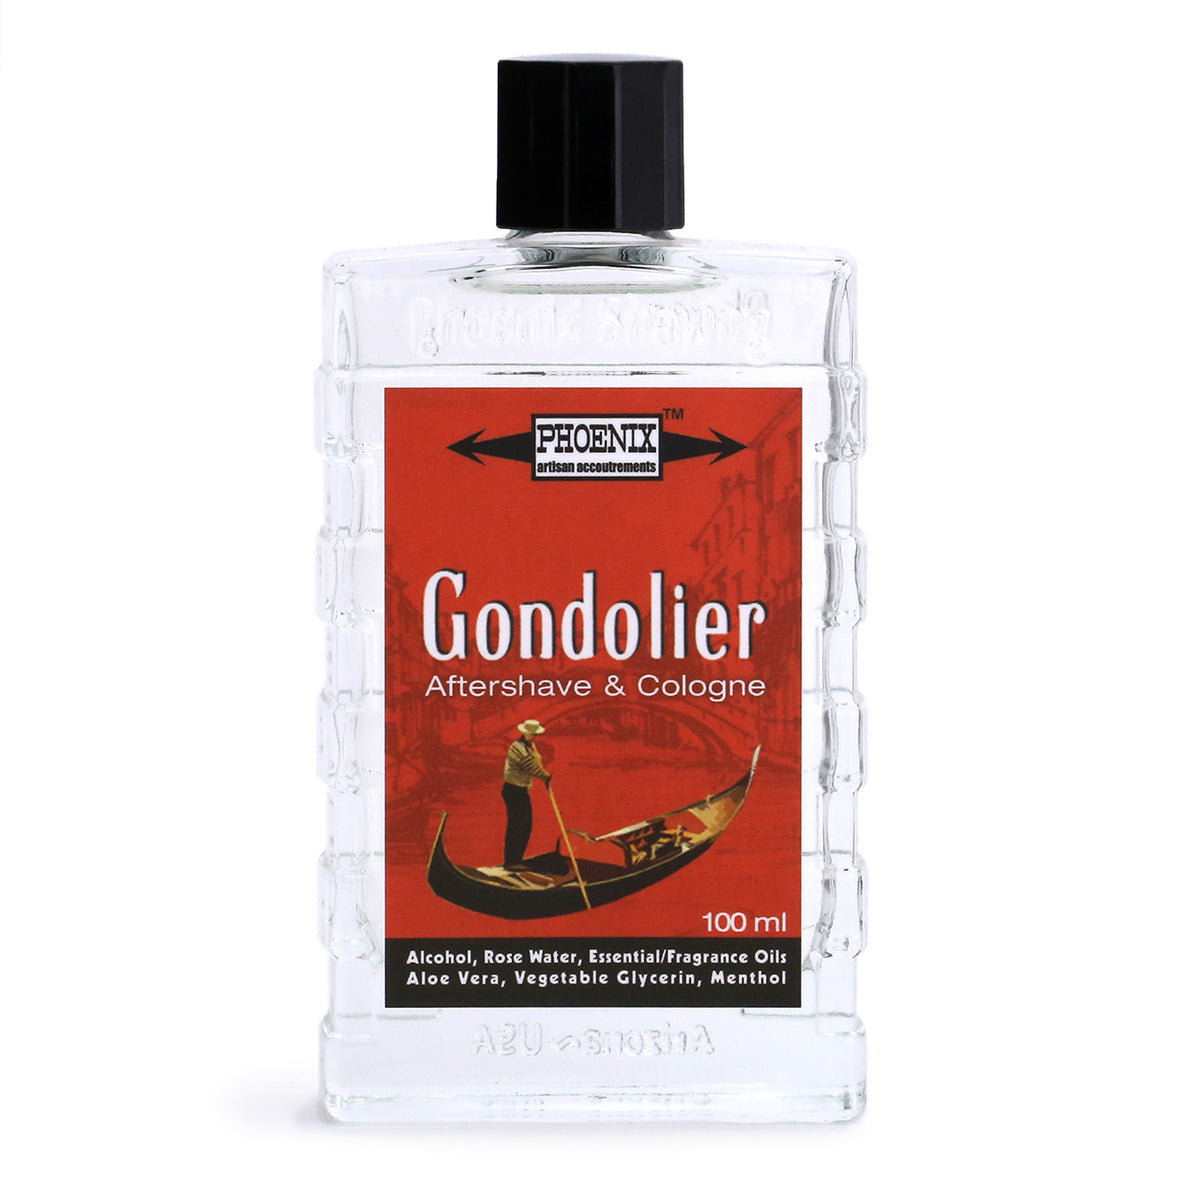 Phoenix Shaving Aftershave & Cologne - Gondolier